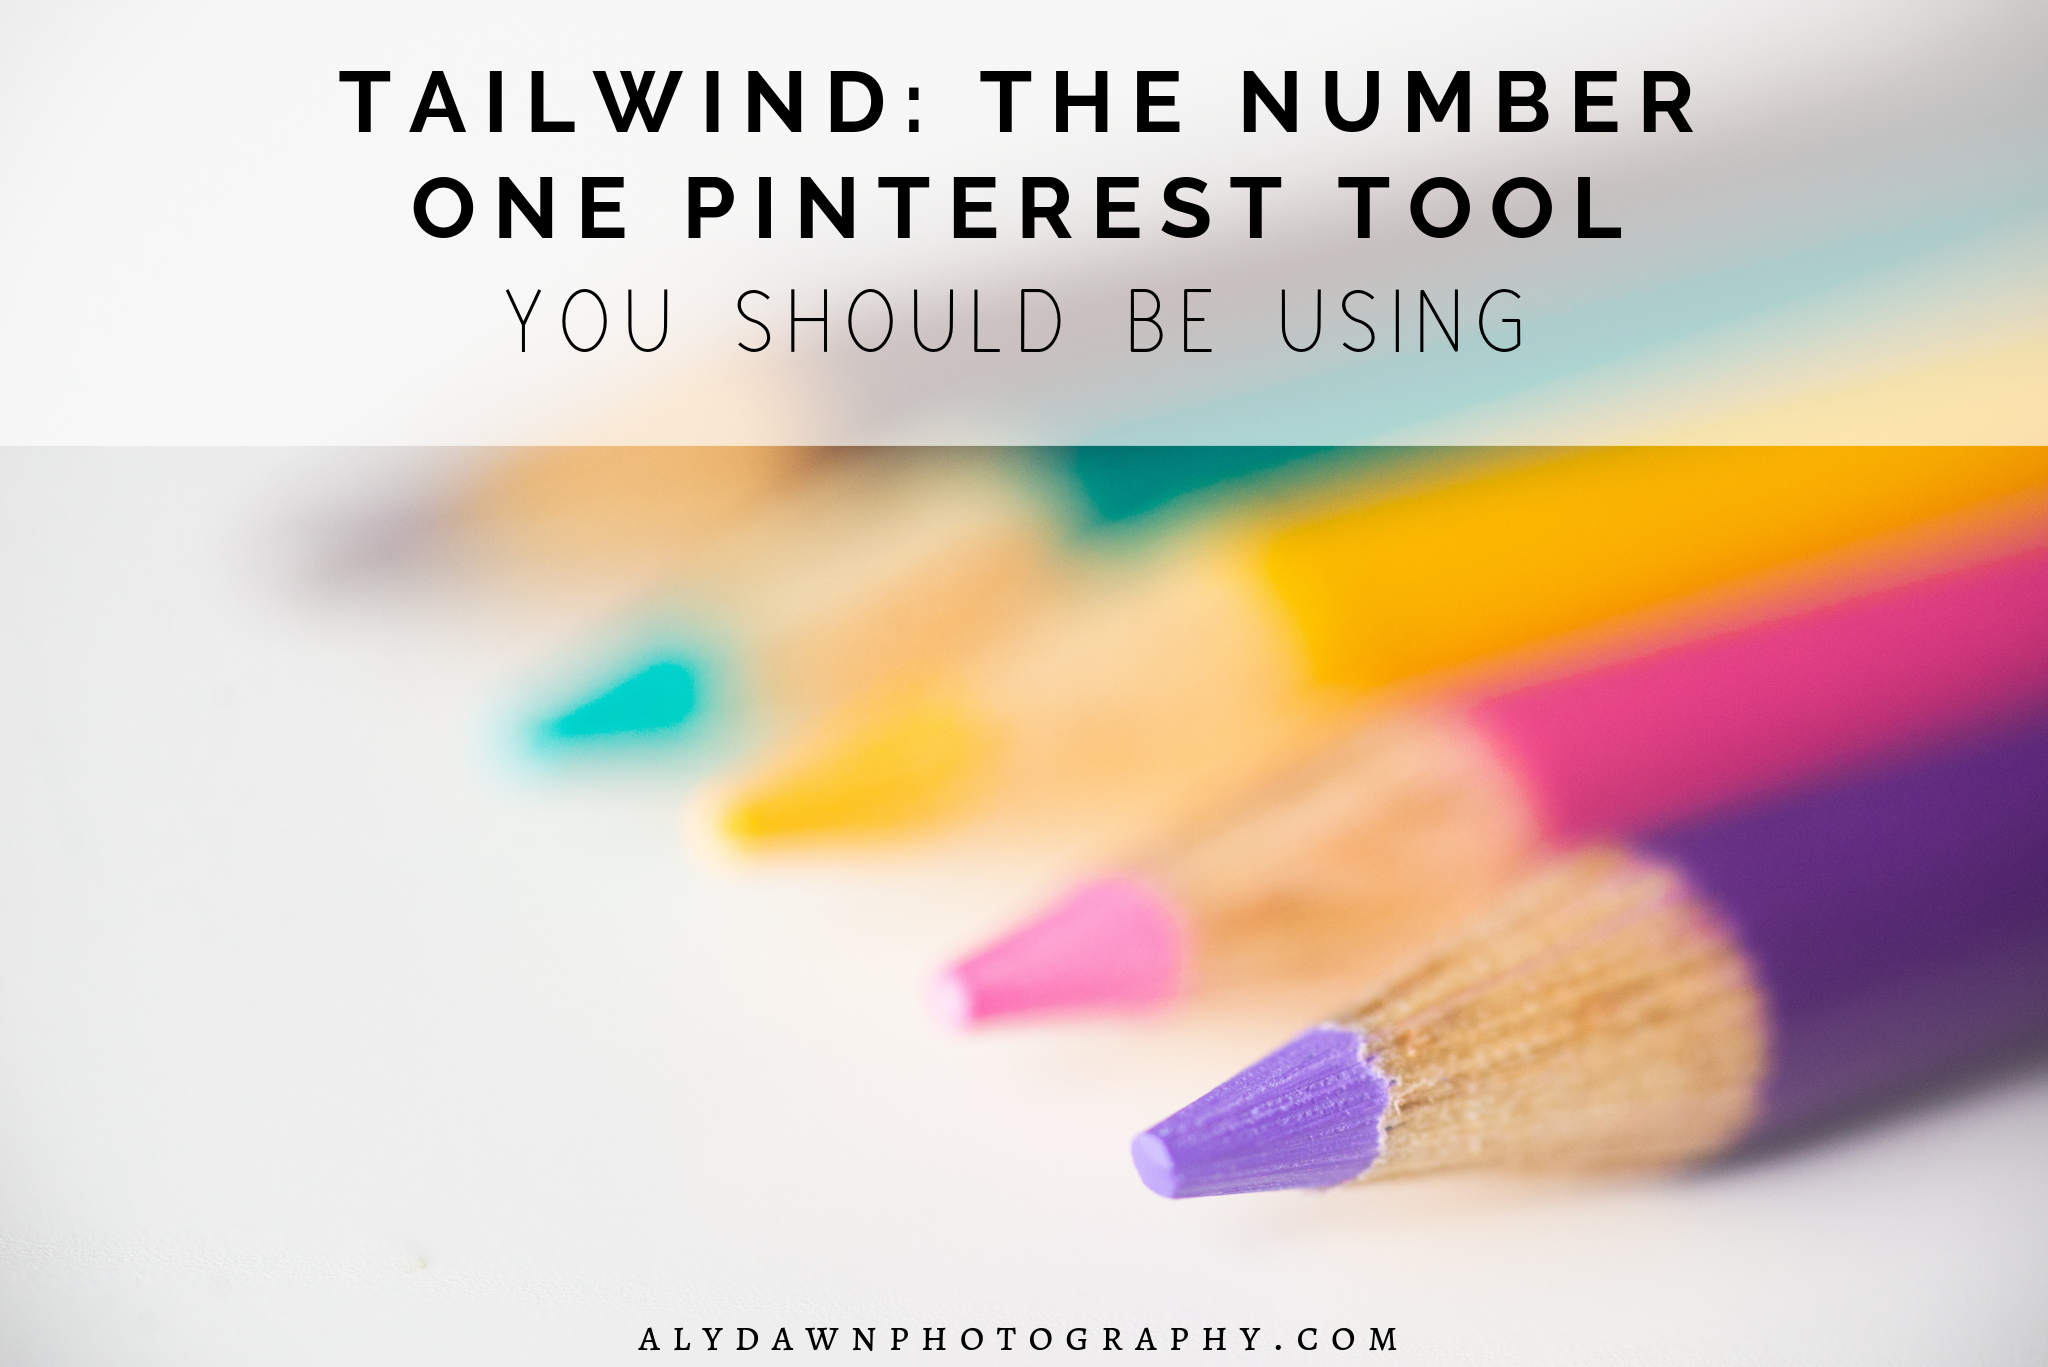 Tailwind: The Number One Pinterest Tool You Should Be Using